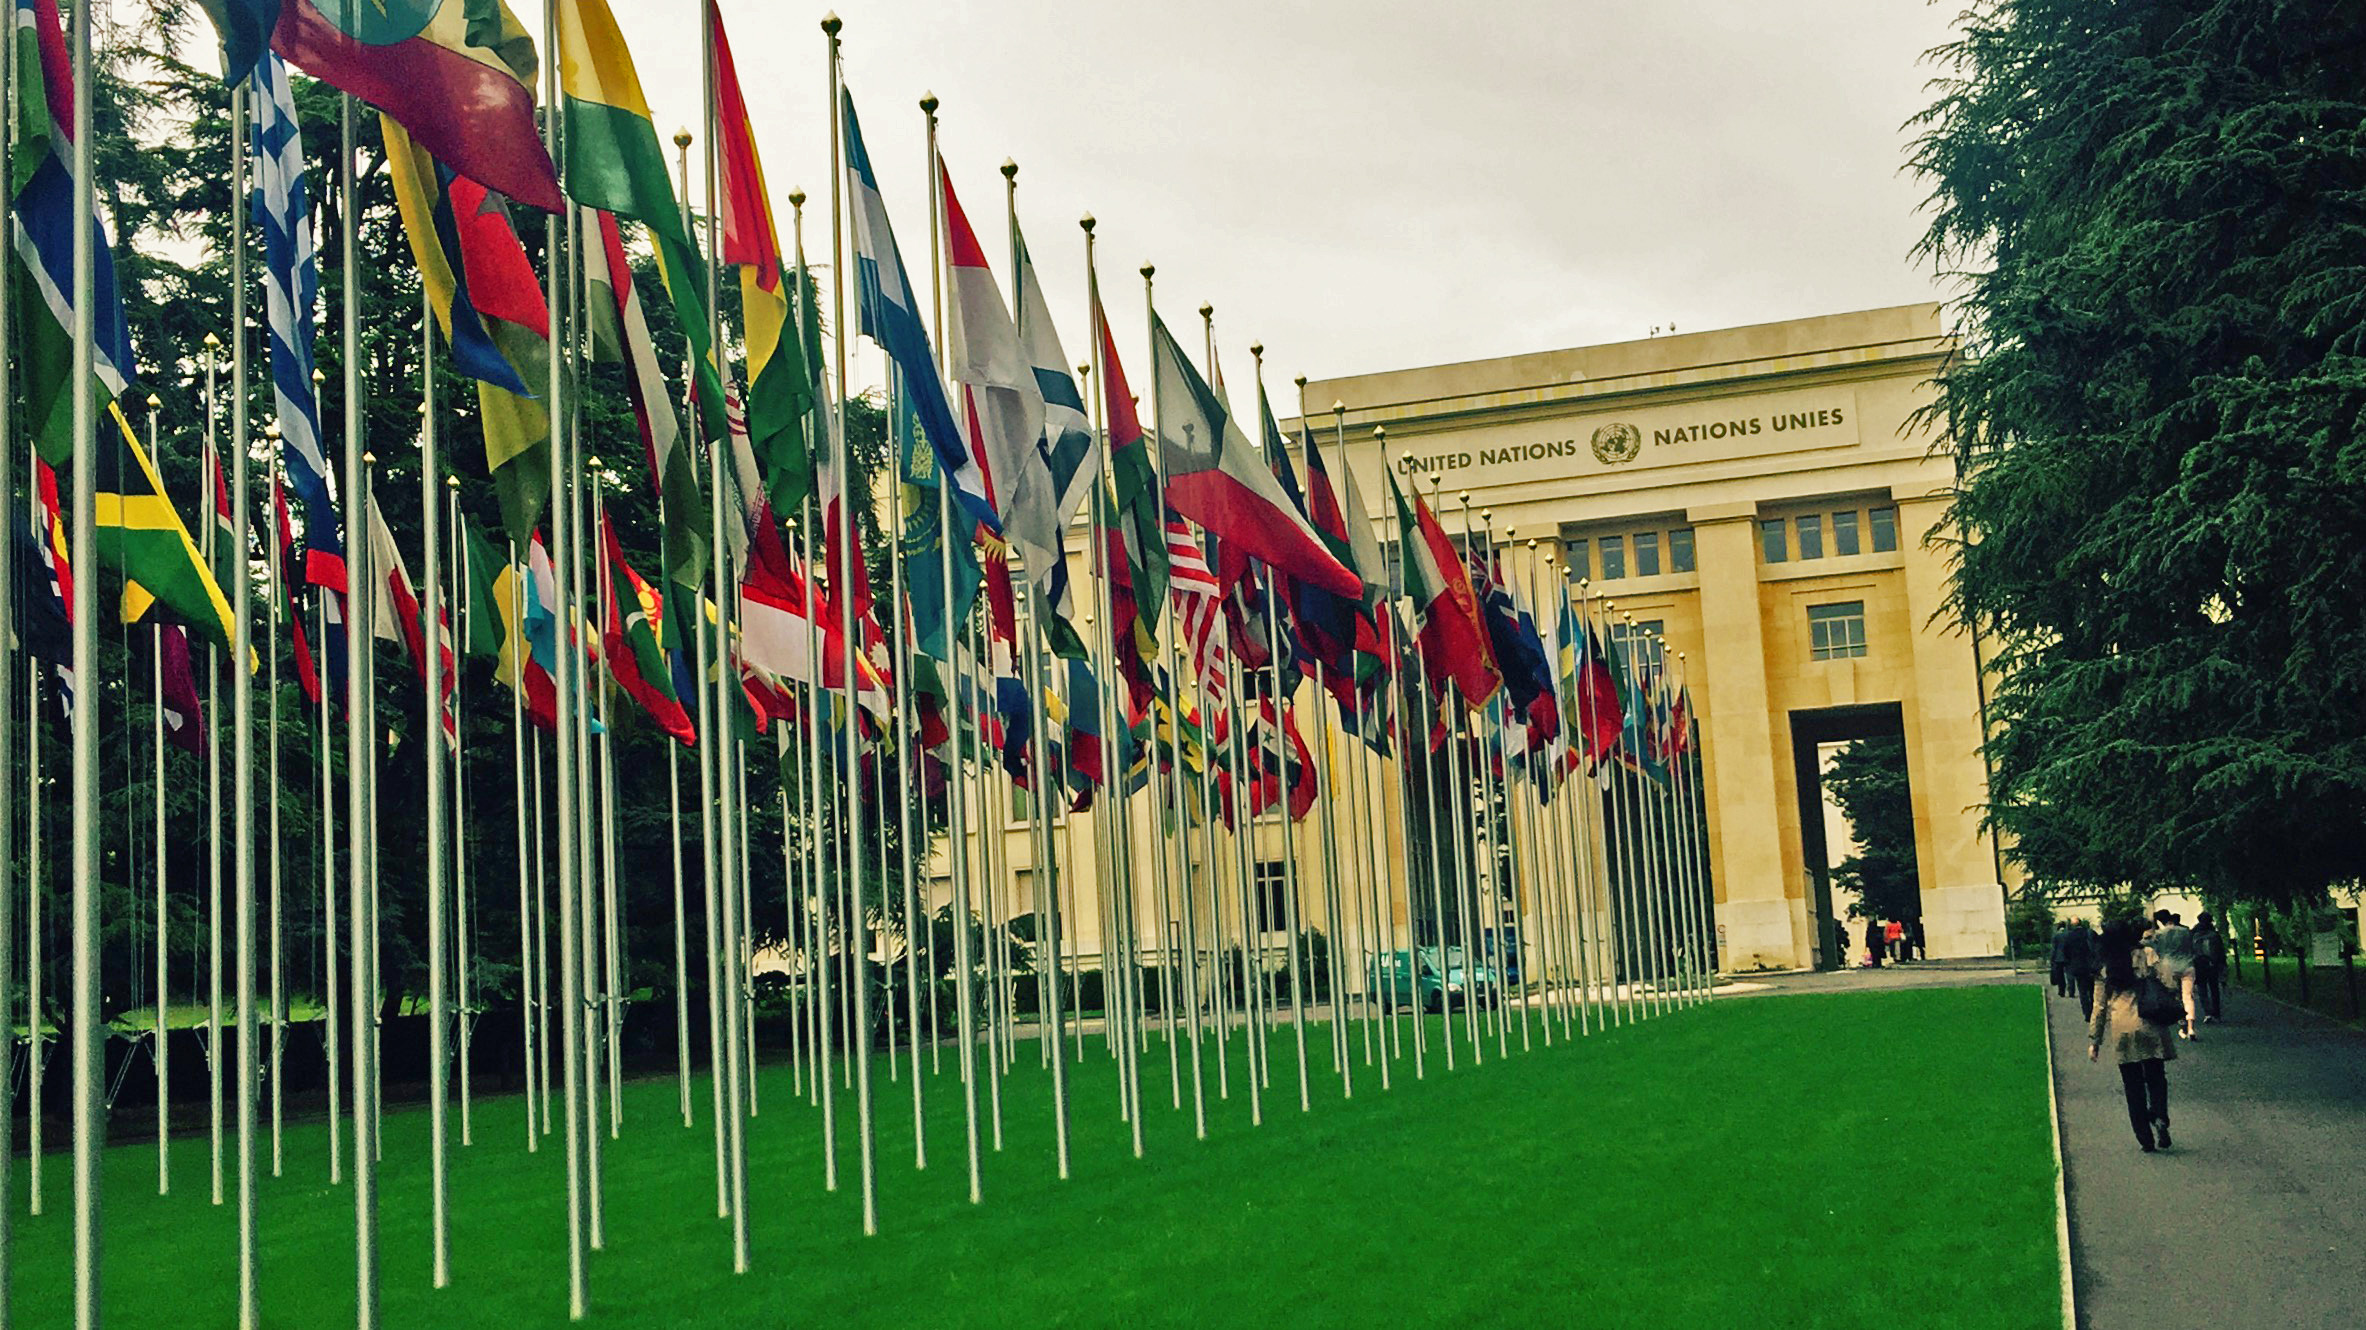 UN flags in a row before an arch in Geneva's Palais des Nations where the ILO is taking place